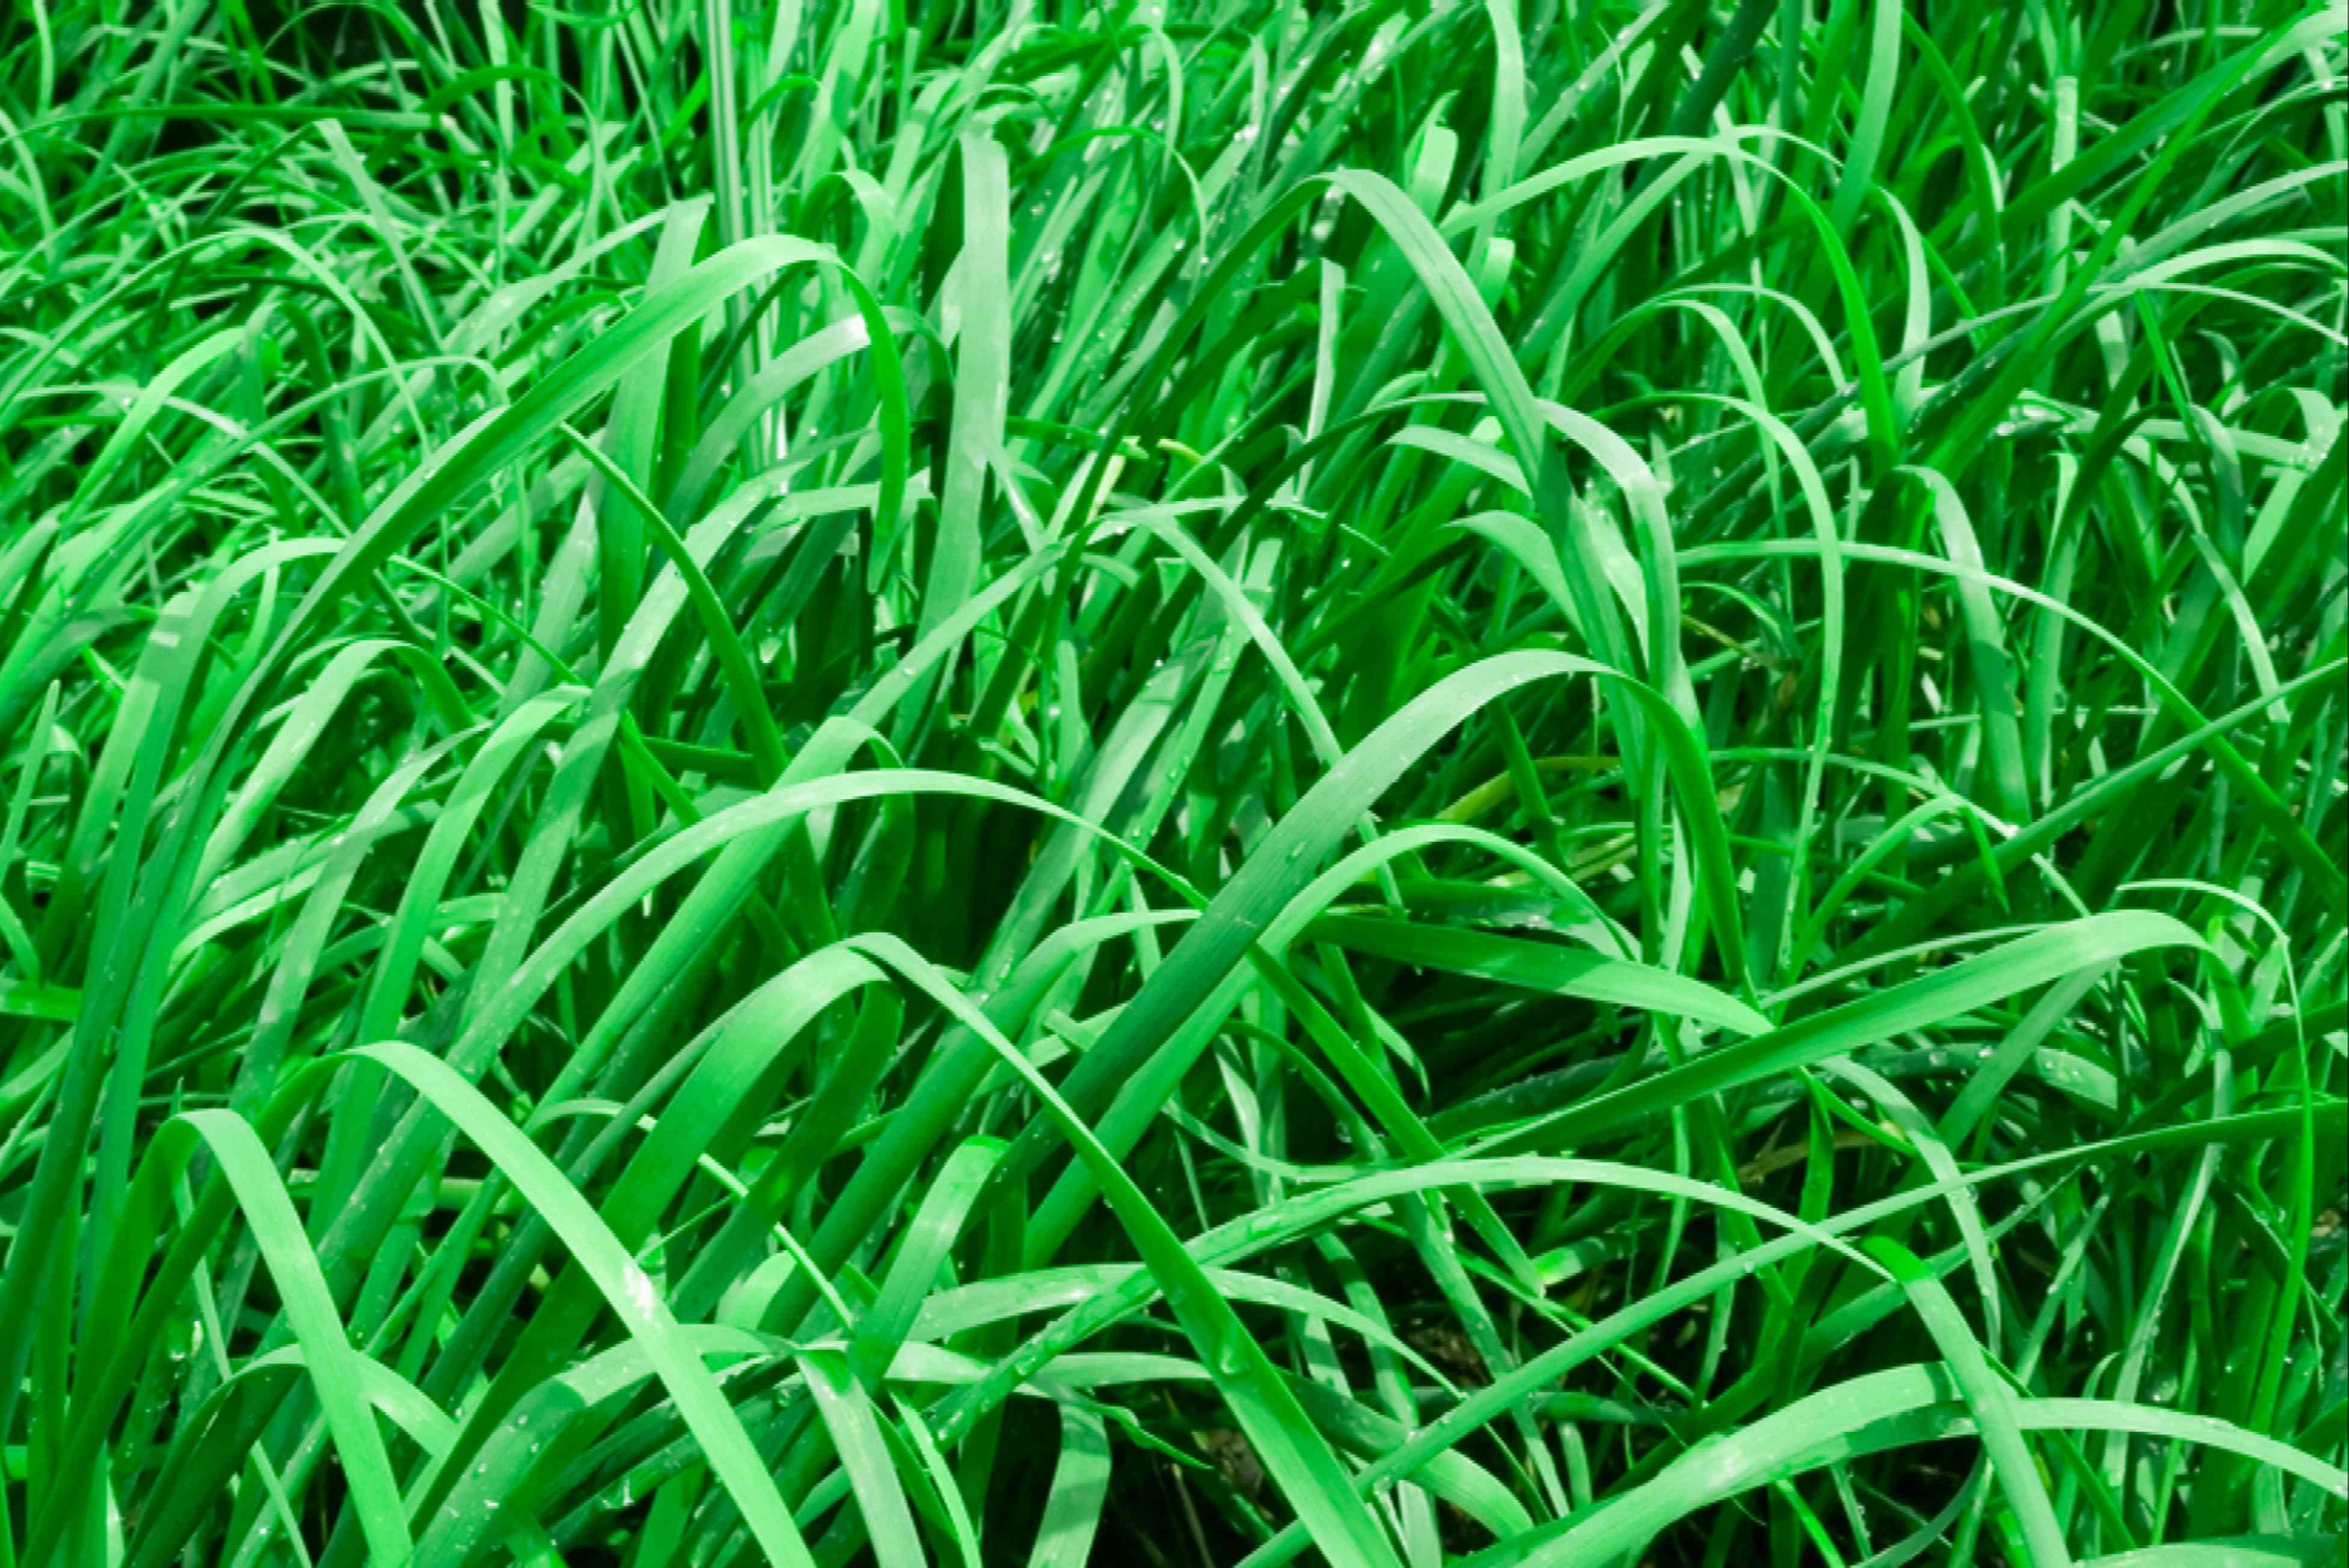 Tall fescue grass with wide blades stacked on each other closeup